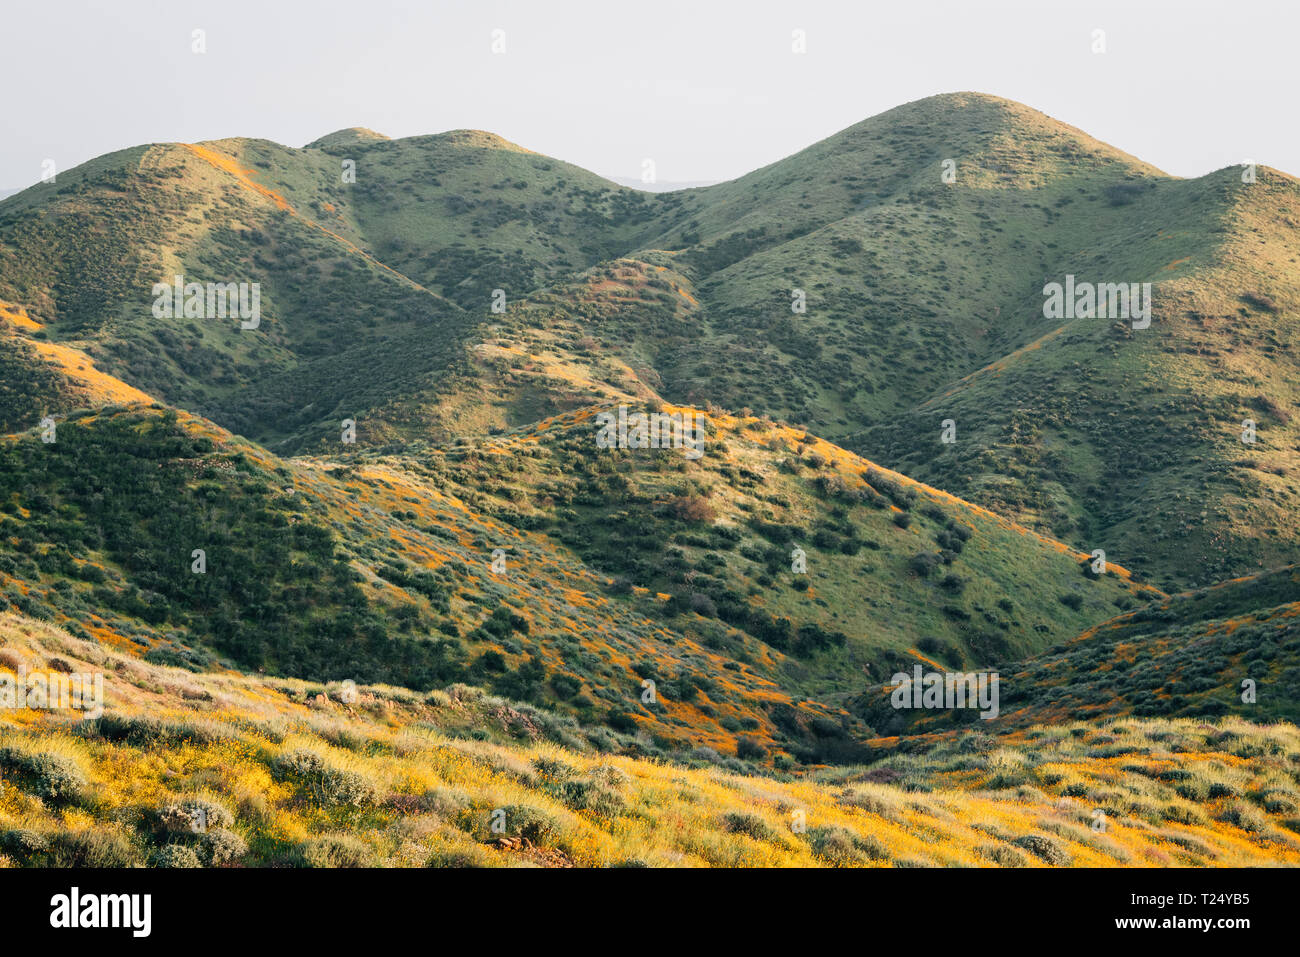 Poppies and green hills at Walker Canyon, in Lake Elsinore, California - Stock Image